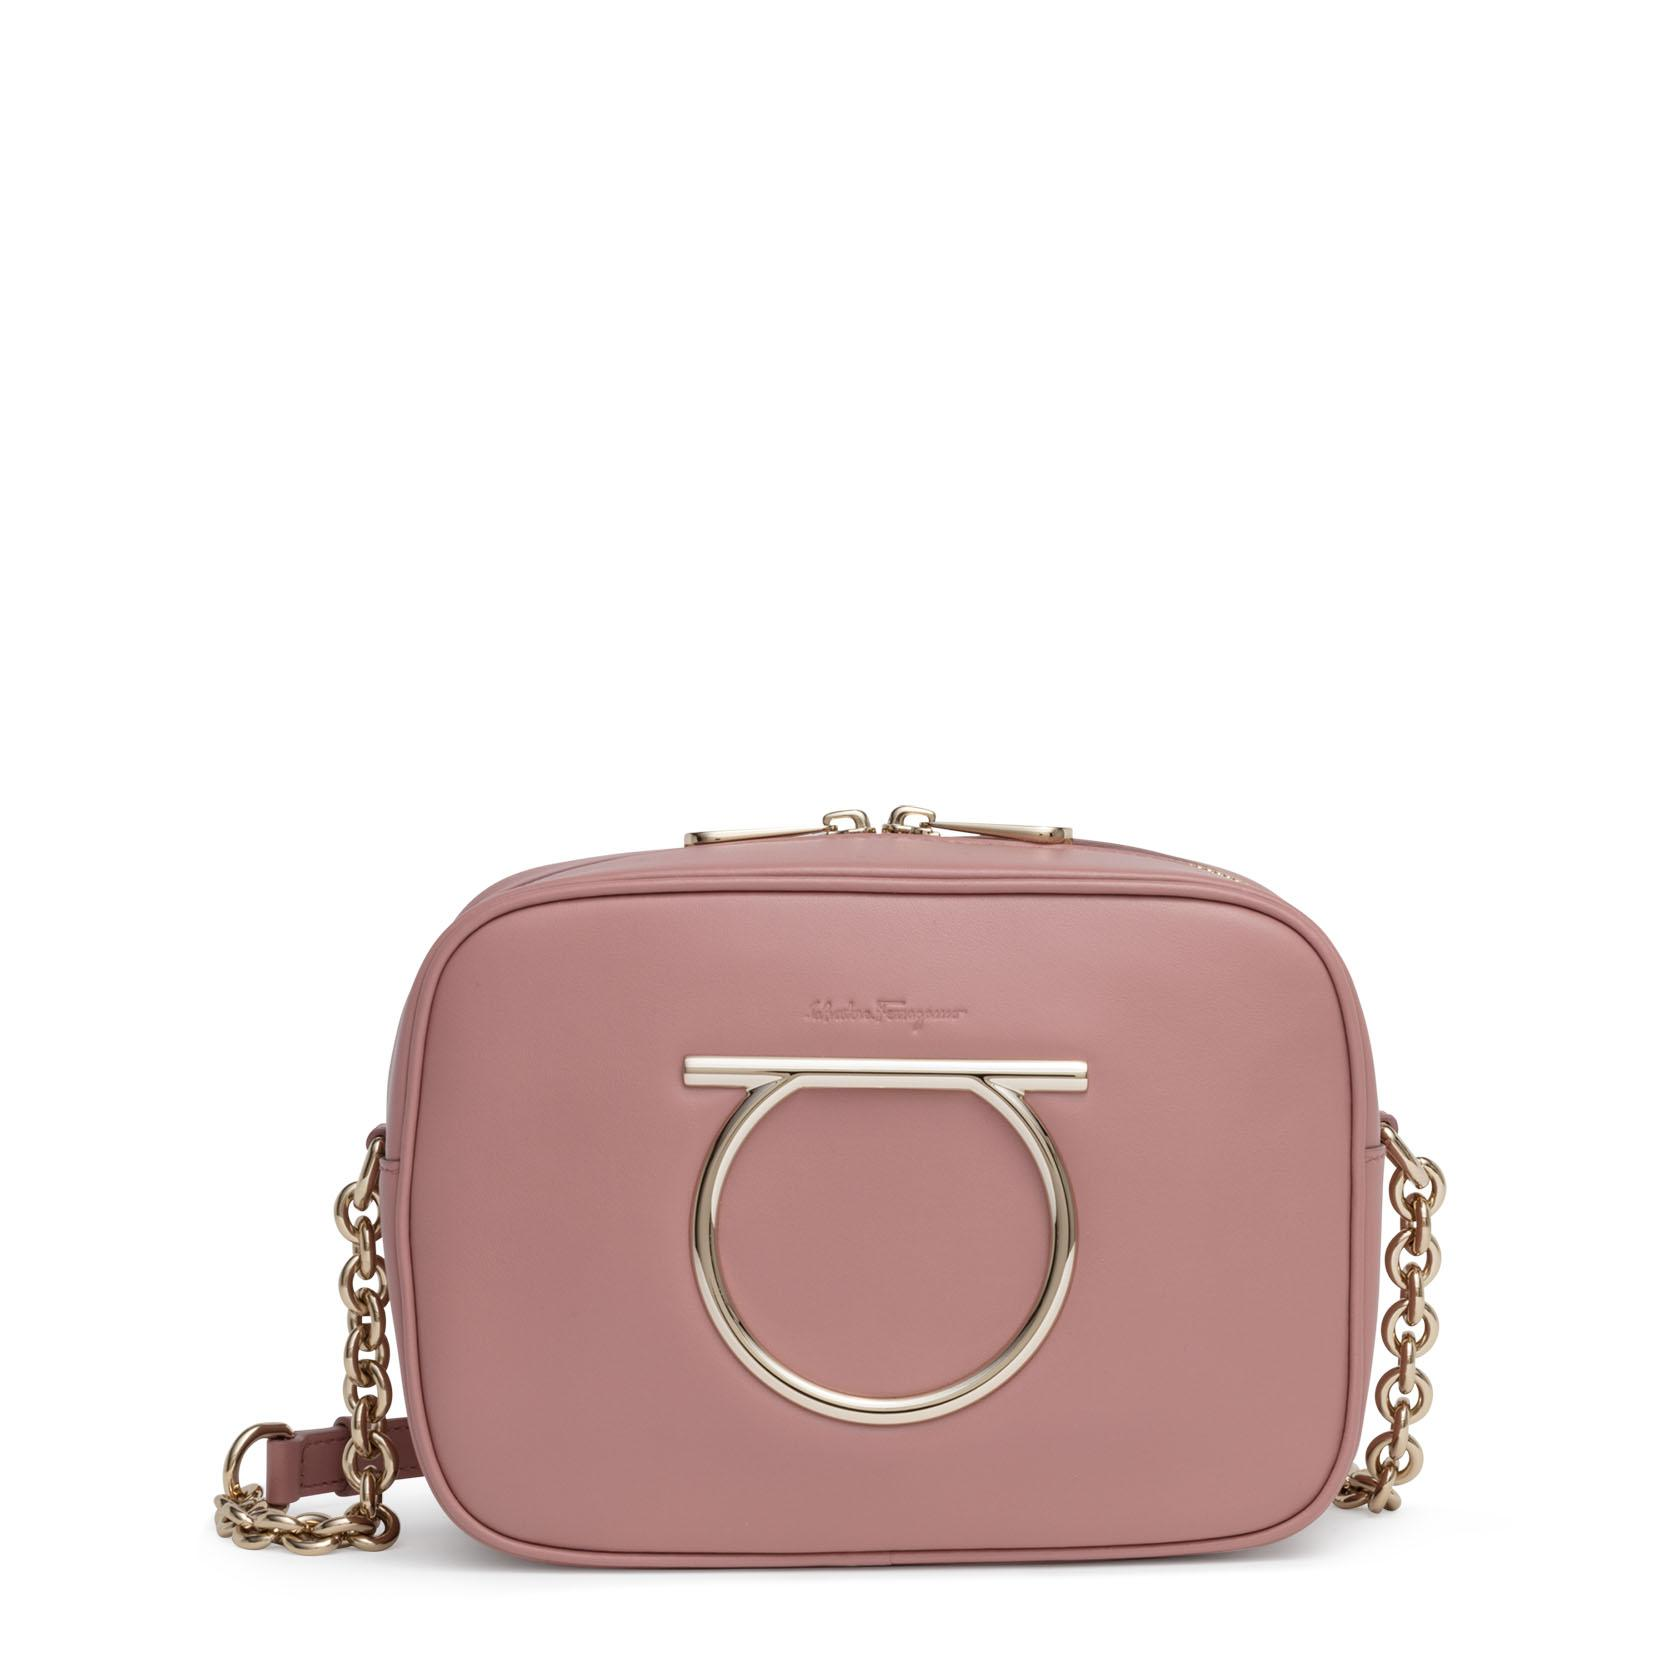 Womens Gancini Dusty Pink Camera Bag info for 37e19 730ca  Salvatore  Ferragamo ... ba5a0568cbb56